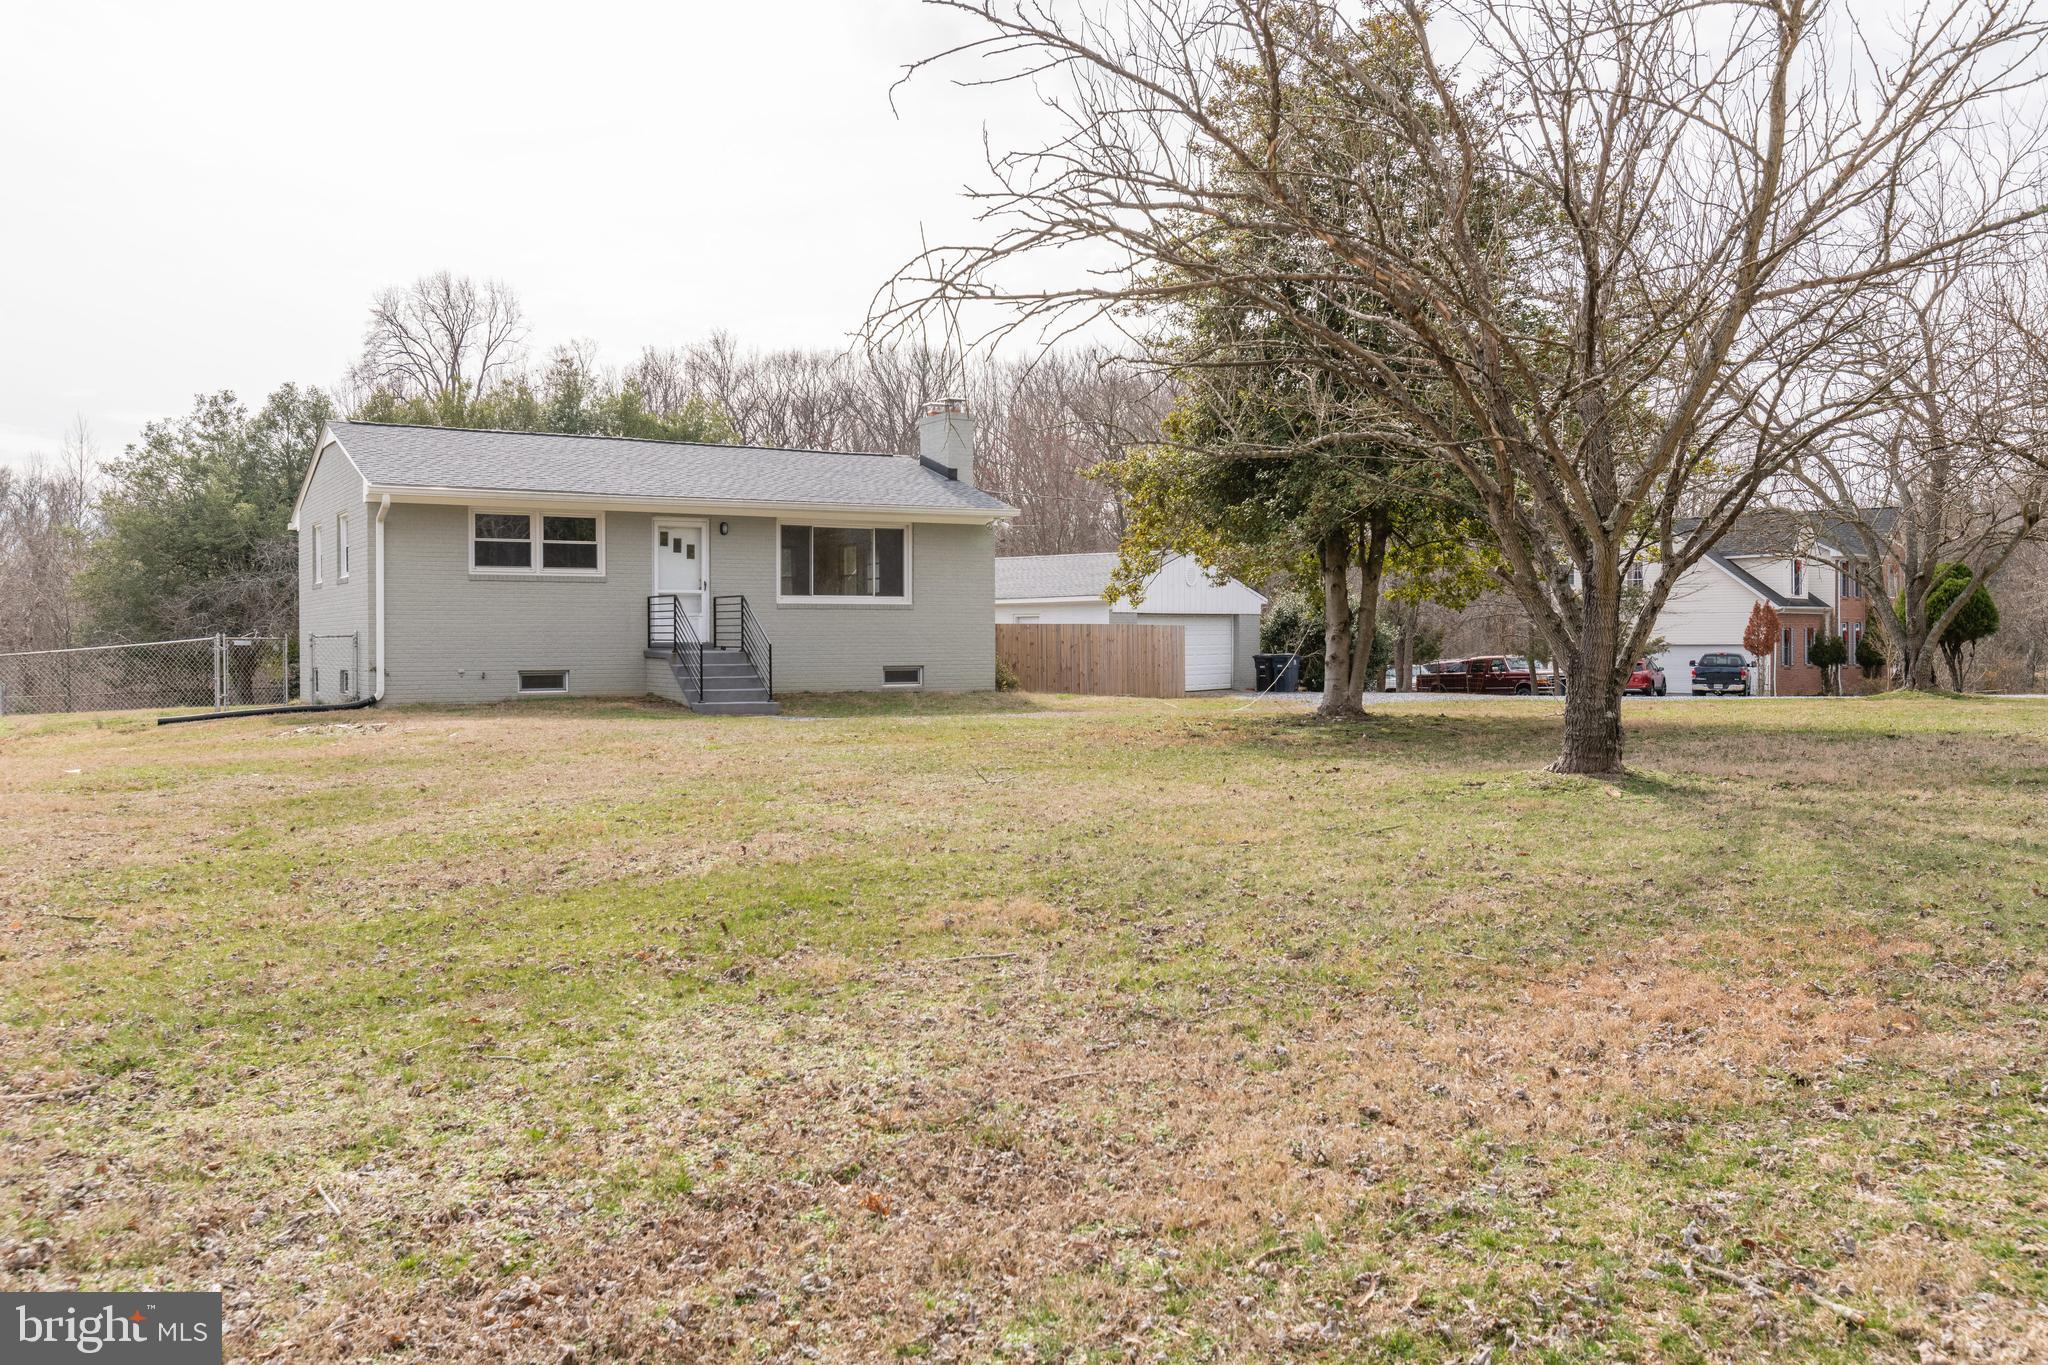 Updated home on gorgeous five acre lot. Polished hardwoods throughout main level. Renovated kitchen